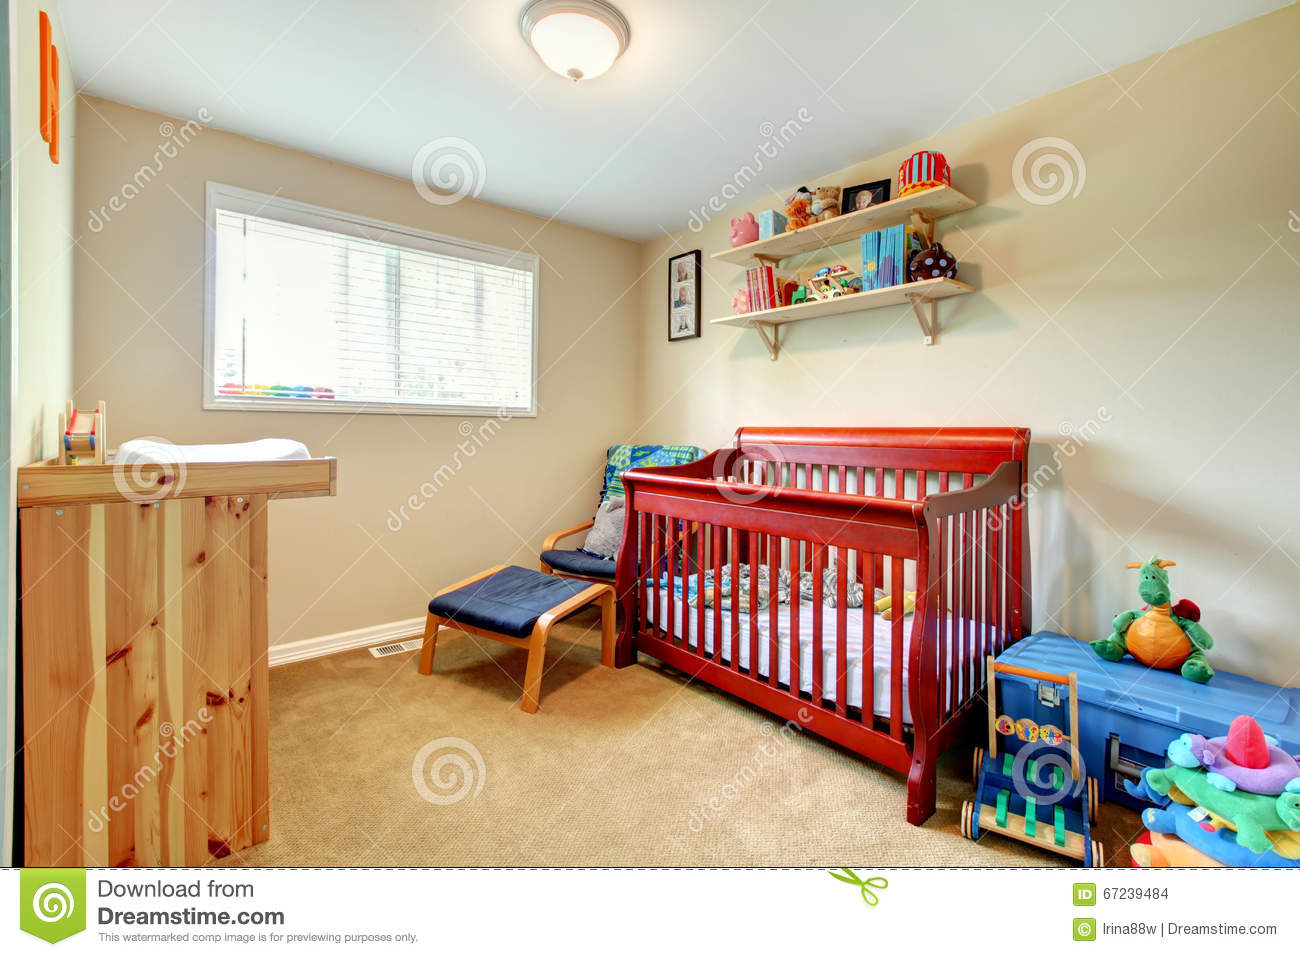 Baby room with red stained wood crib and bright interior.